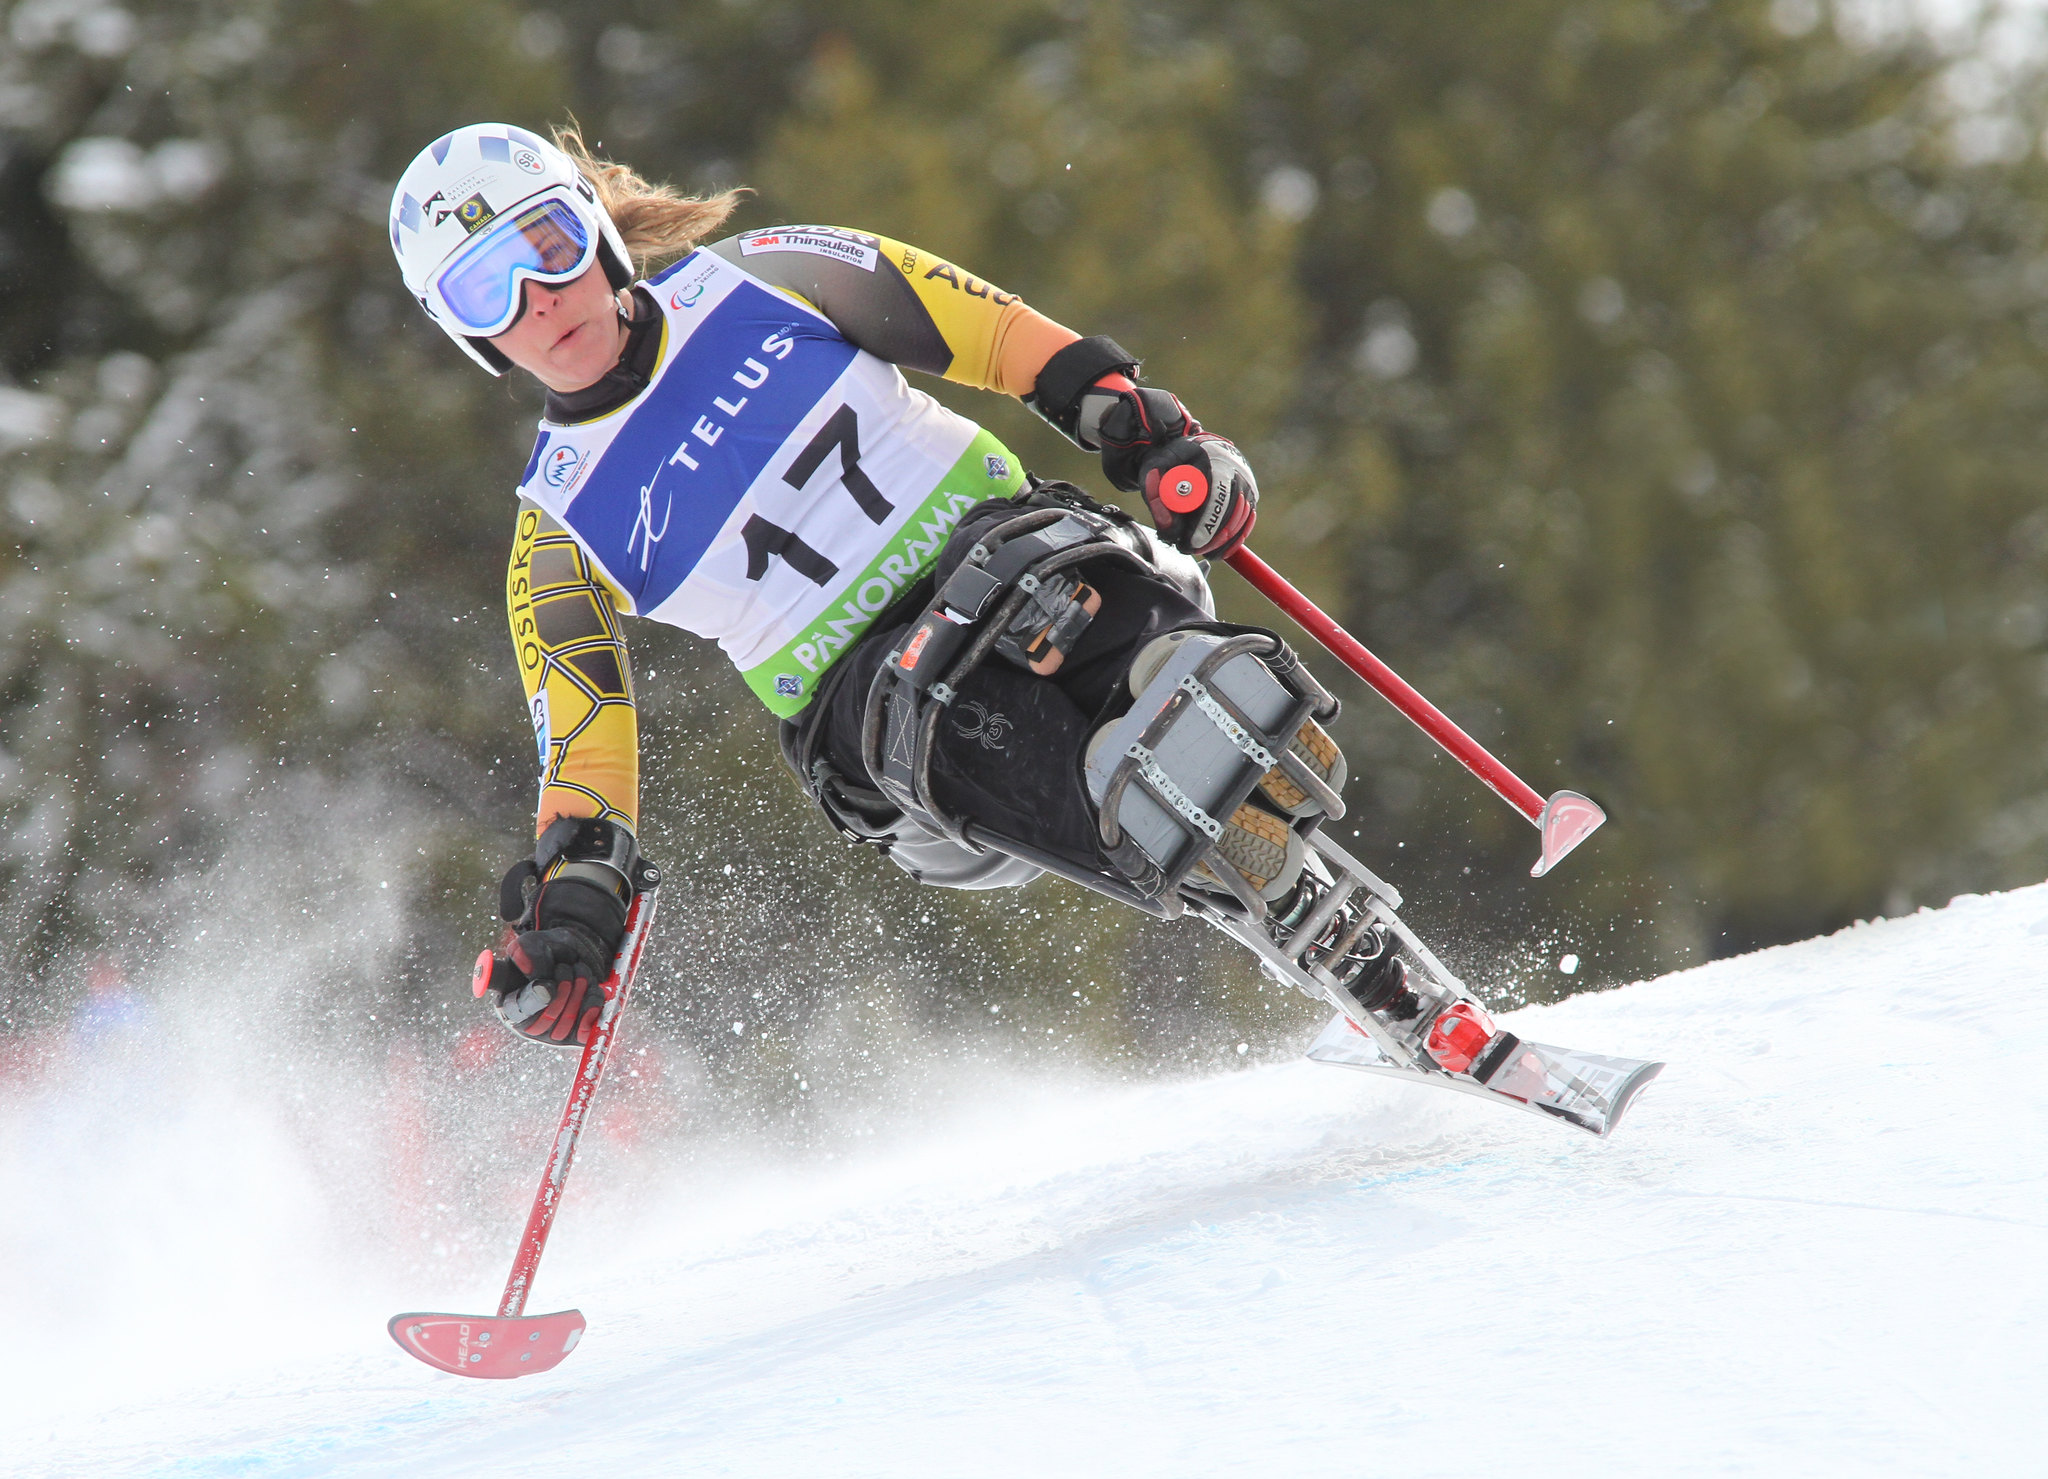 Kimberly Joines skis an IPC World Cup super-G in Panorama, B.C.